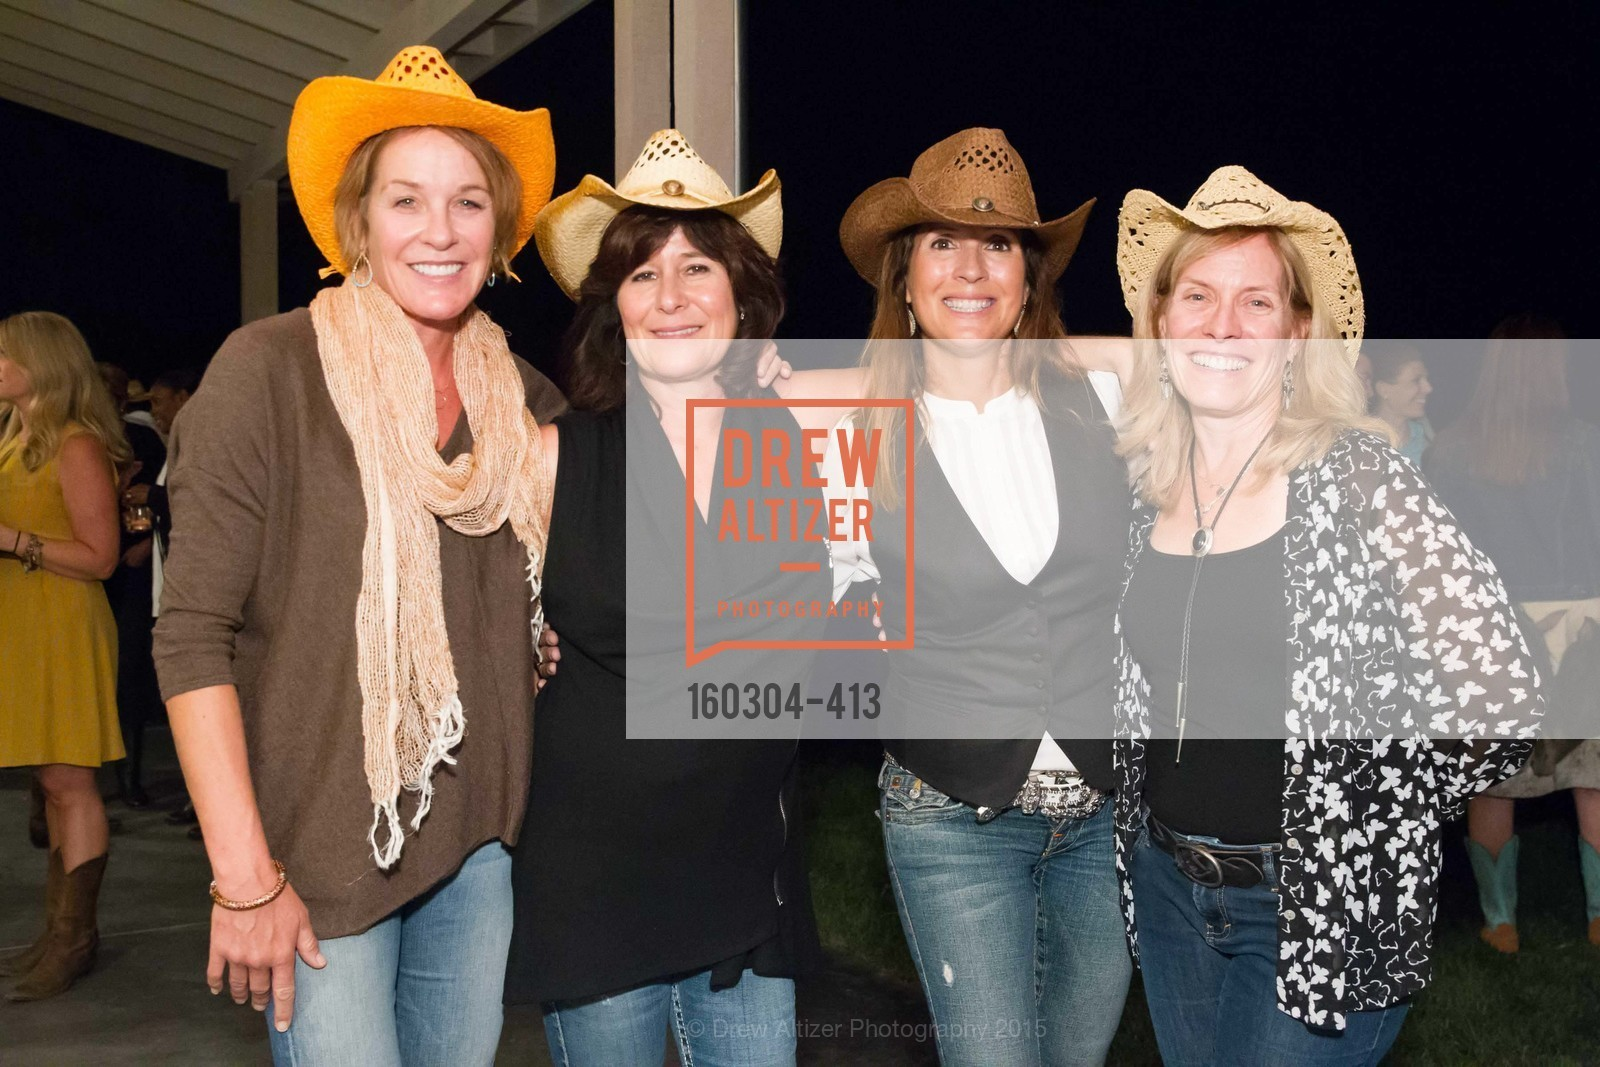 Becky Delgado, Vicki Figone, Jeanine Farrell, Kristen Decker, A Harvest Barn Dance at Cornerstone Presented By Giant Steps Therapeutic Equestrian Center, Cornerstone Sonoma. 23570 Arnold Dr, October 24th, 2015,Drew Altizer, Drew Altizer Photography, full-service agency, private events, San Francisco photographer, photographer california